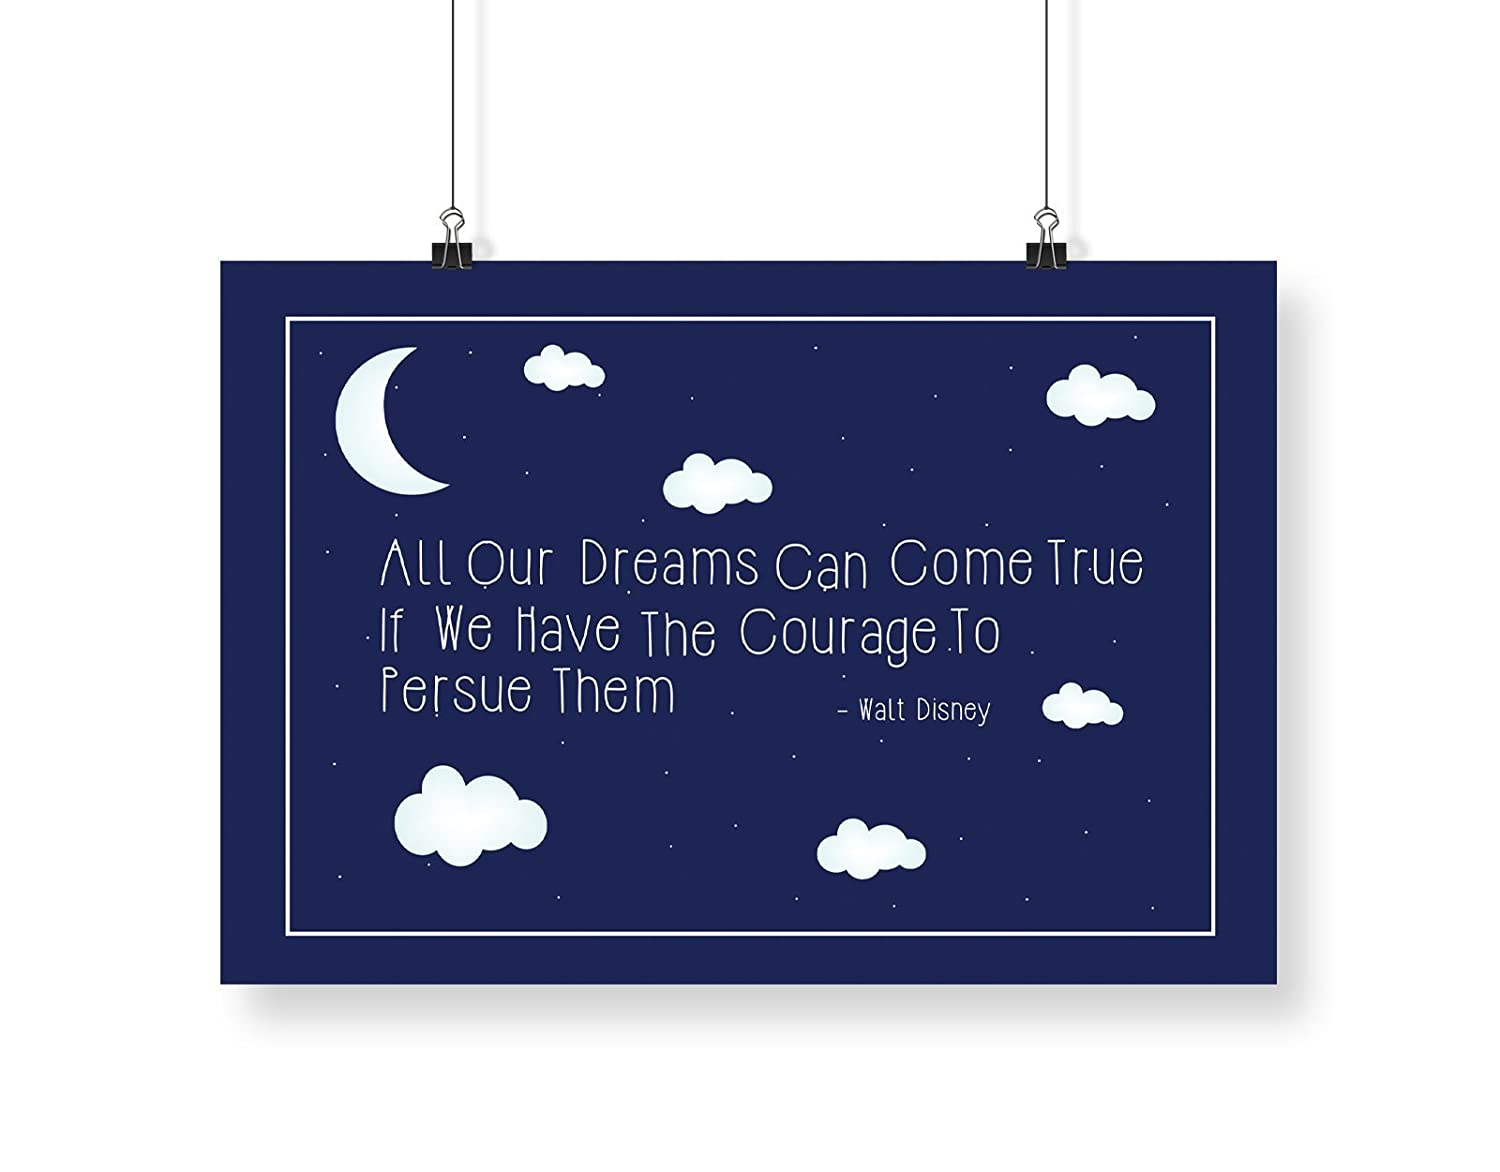 Walt Disney – All Our Dreams Can Come True A4 digital kunst drucken ...